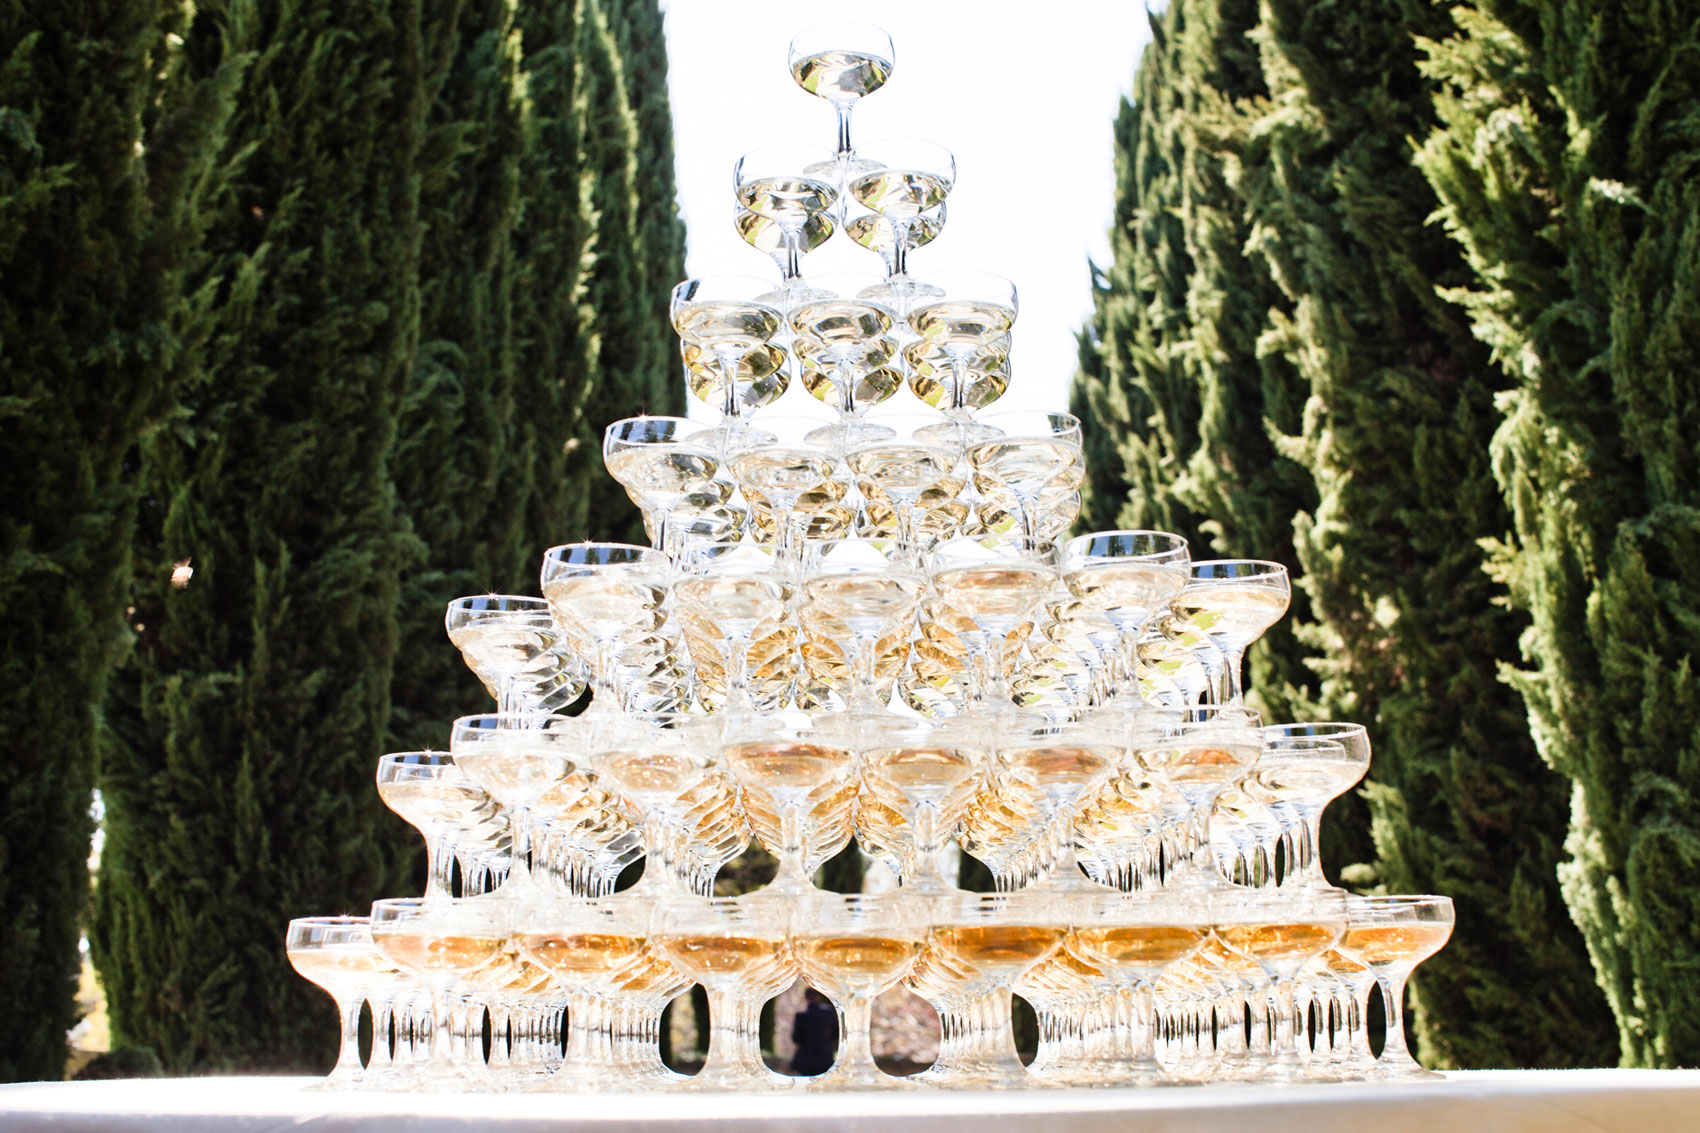 Coupe glass tower filled with Champagne